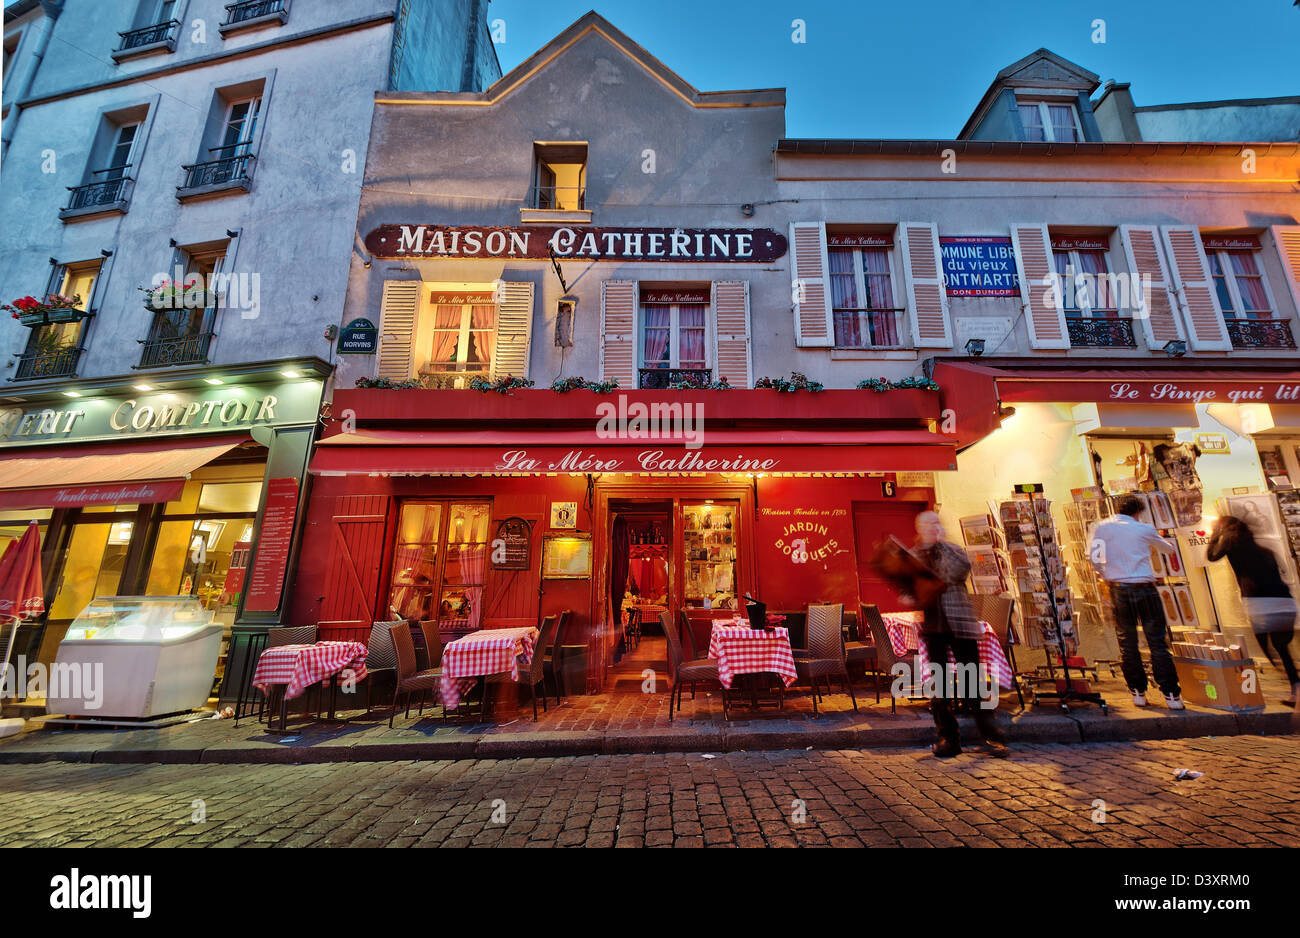 Maison catherine and restaurant la m re catherine near for La maison du cafe paris